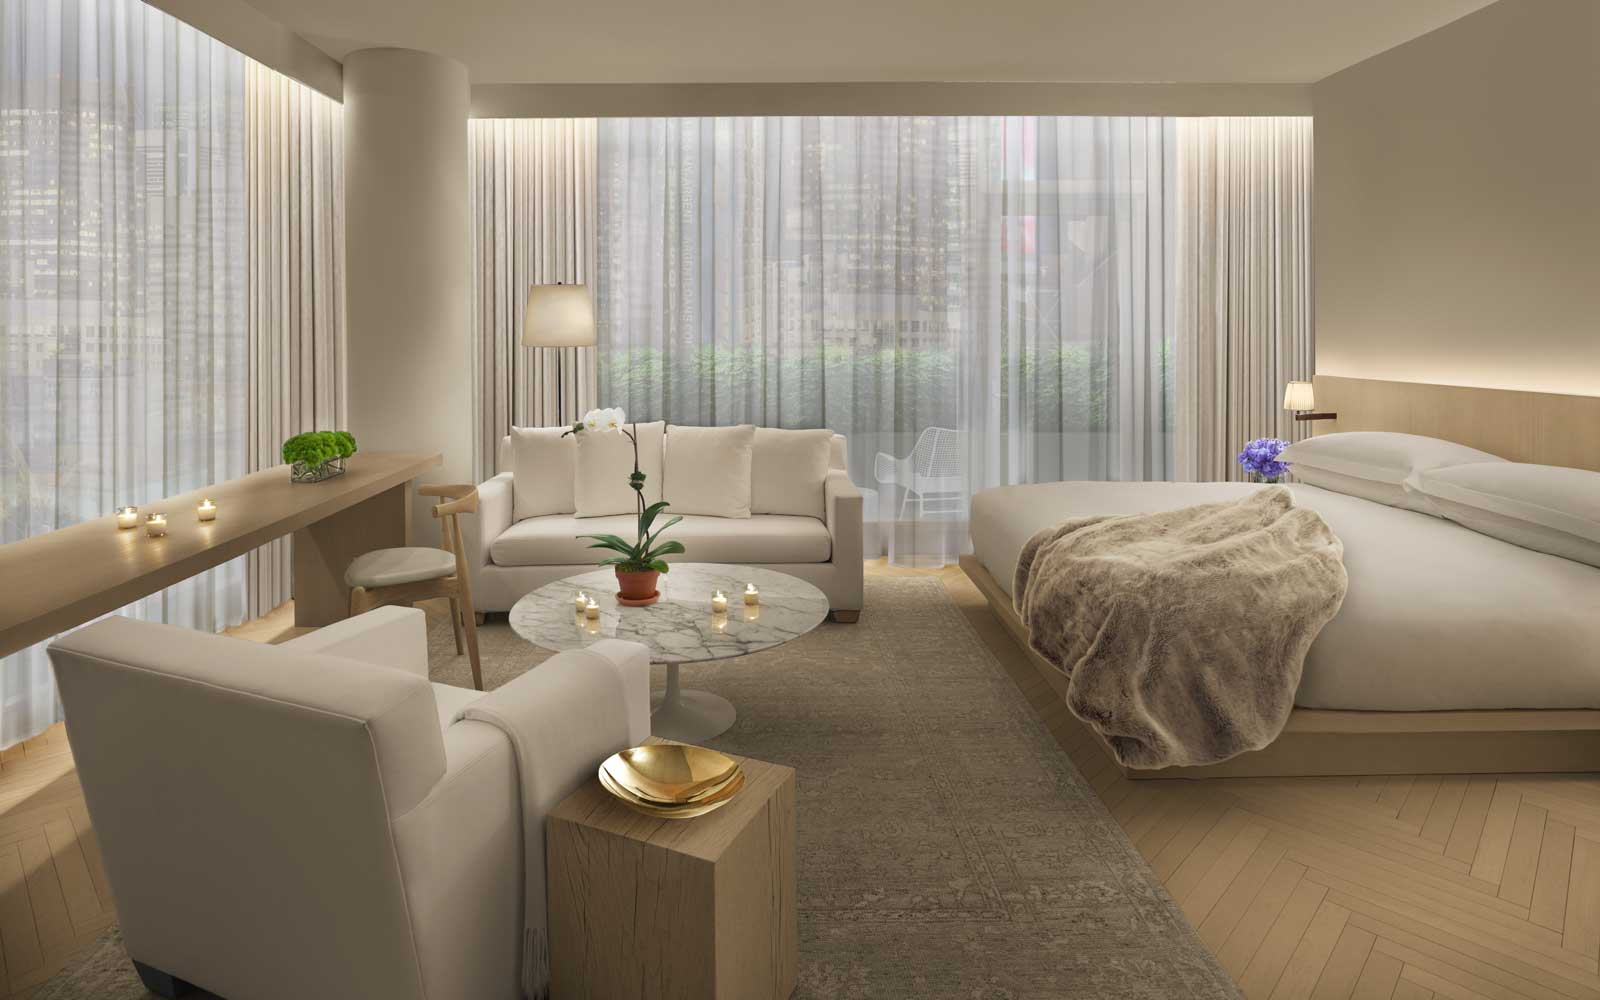 Loft Suite at the Times Square EDITION hotel